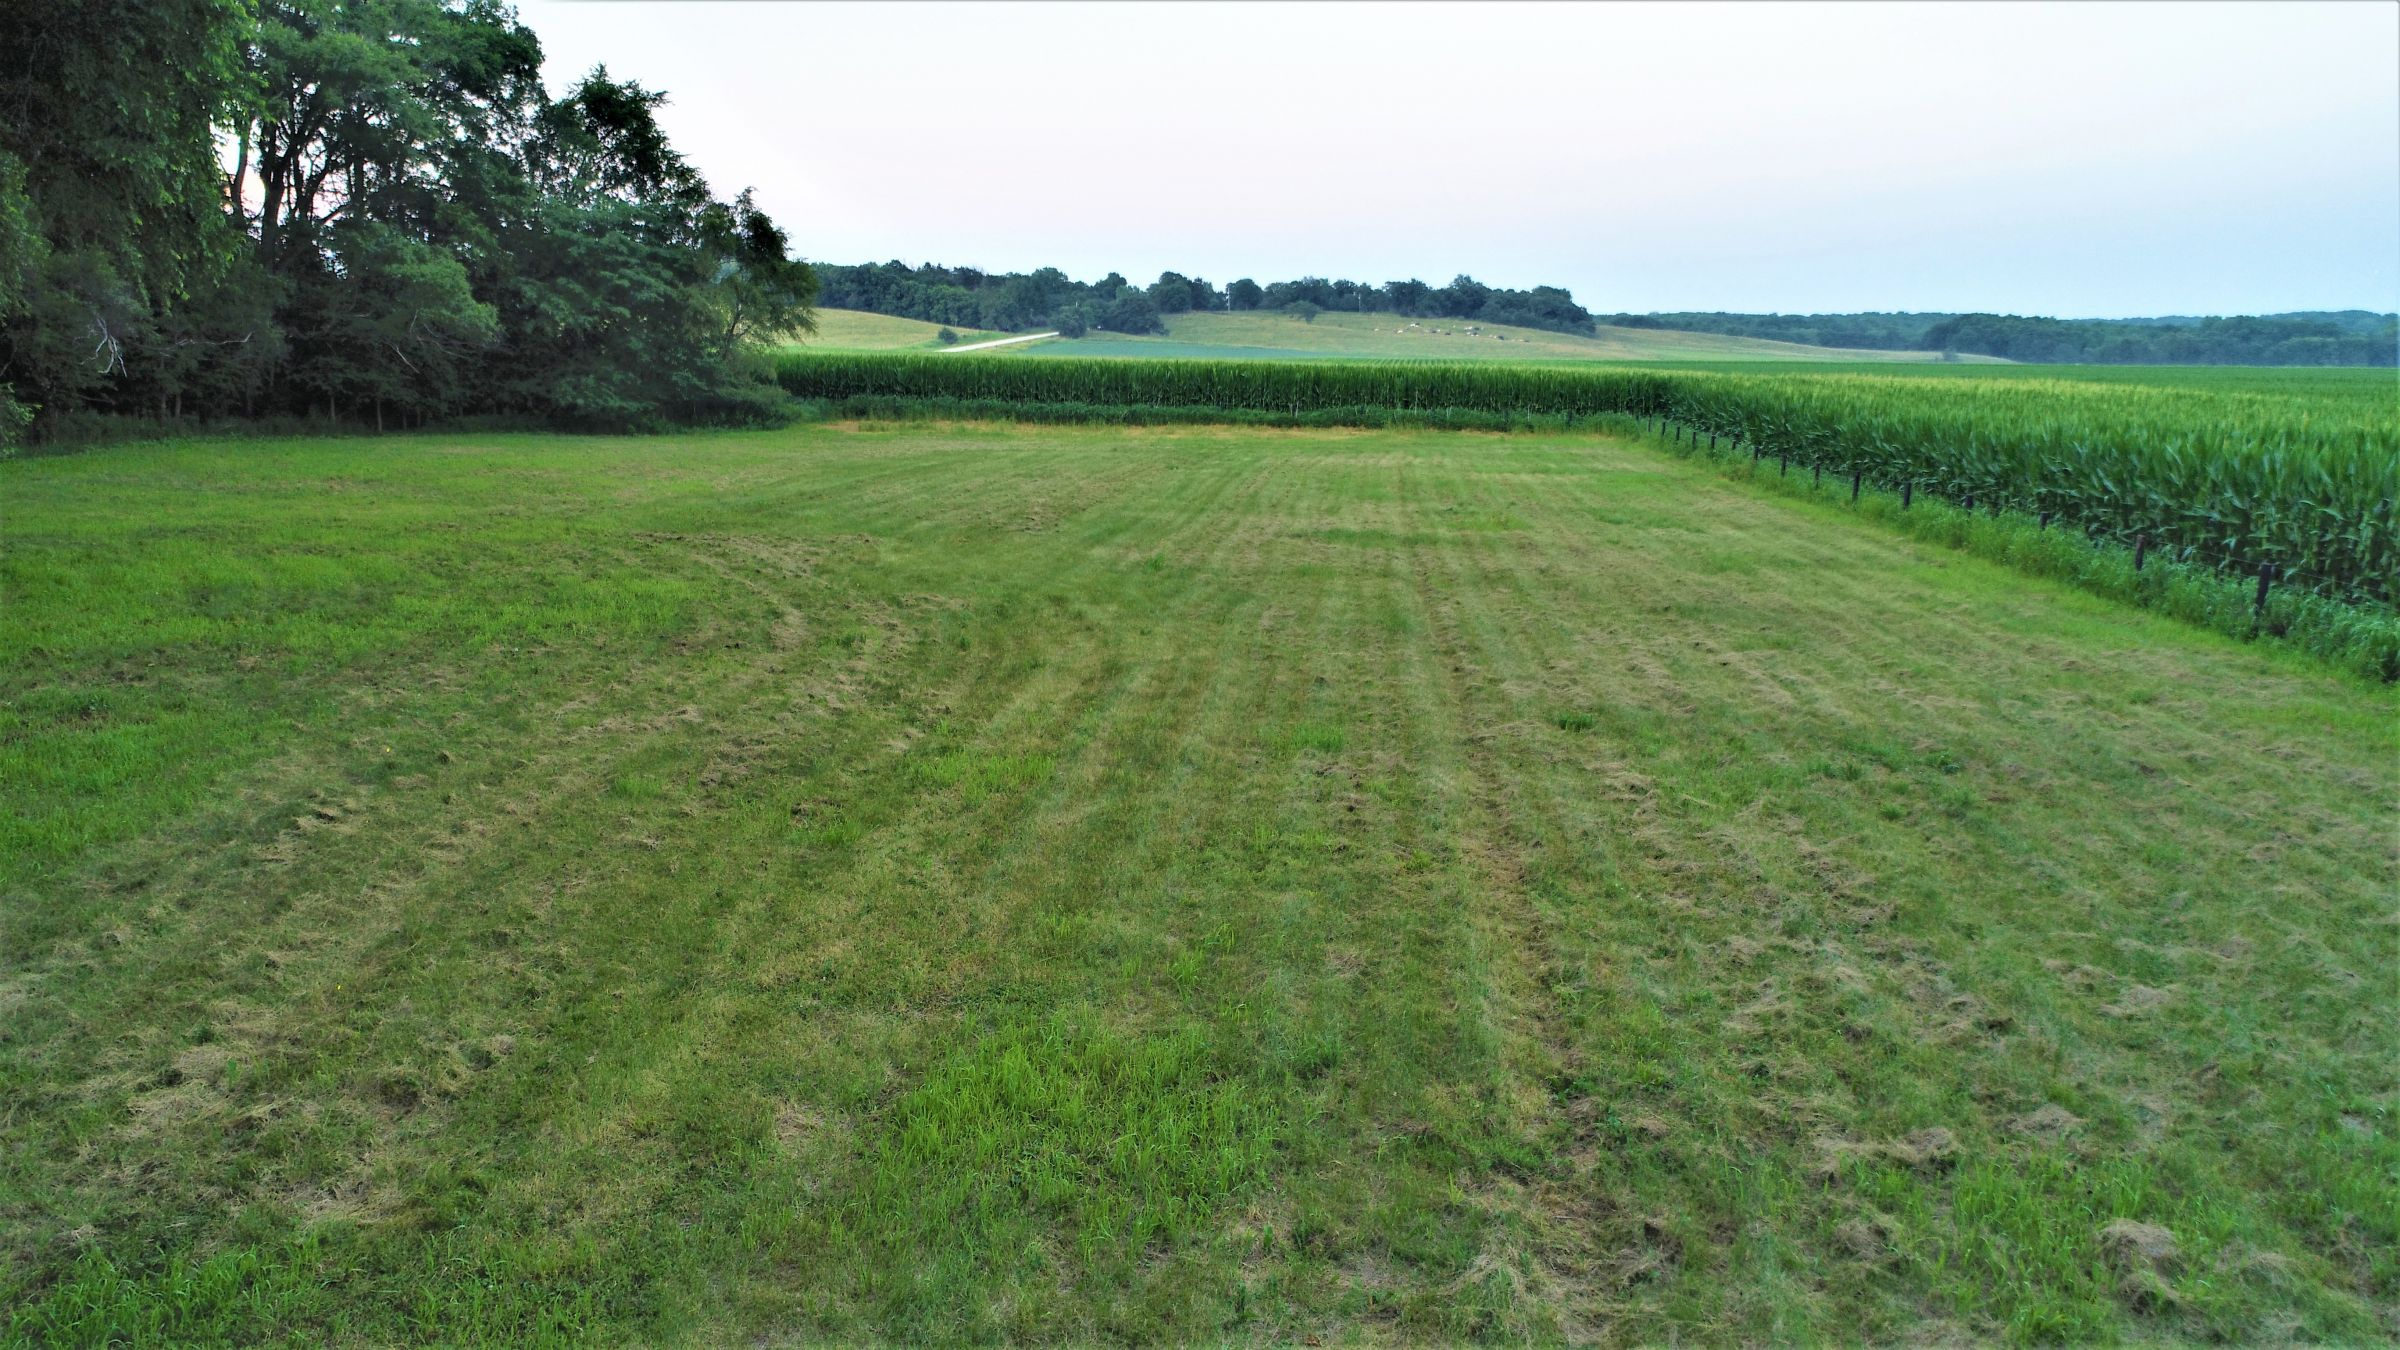 land-dallas-county-iowa-4-acres-listing-number-15072-10-2020-07-17-172631.JPG